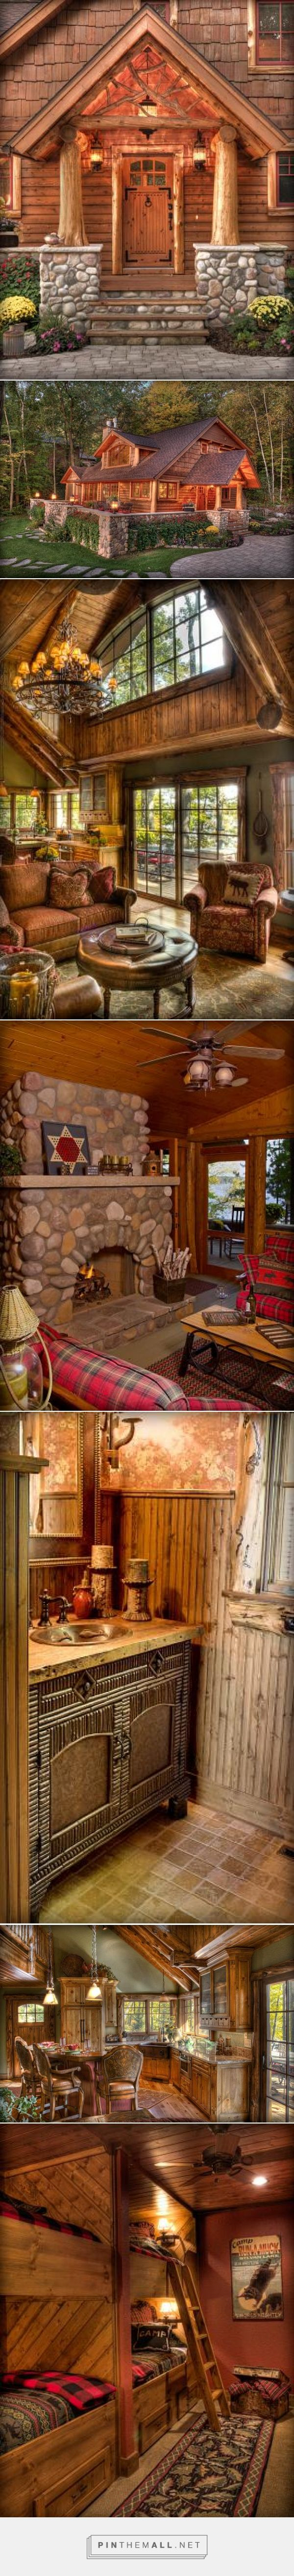 This house is ticking off all the boxes for me in what I want in a log home. - collage created via http://pinthemall.net (Entrance Step Design)